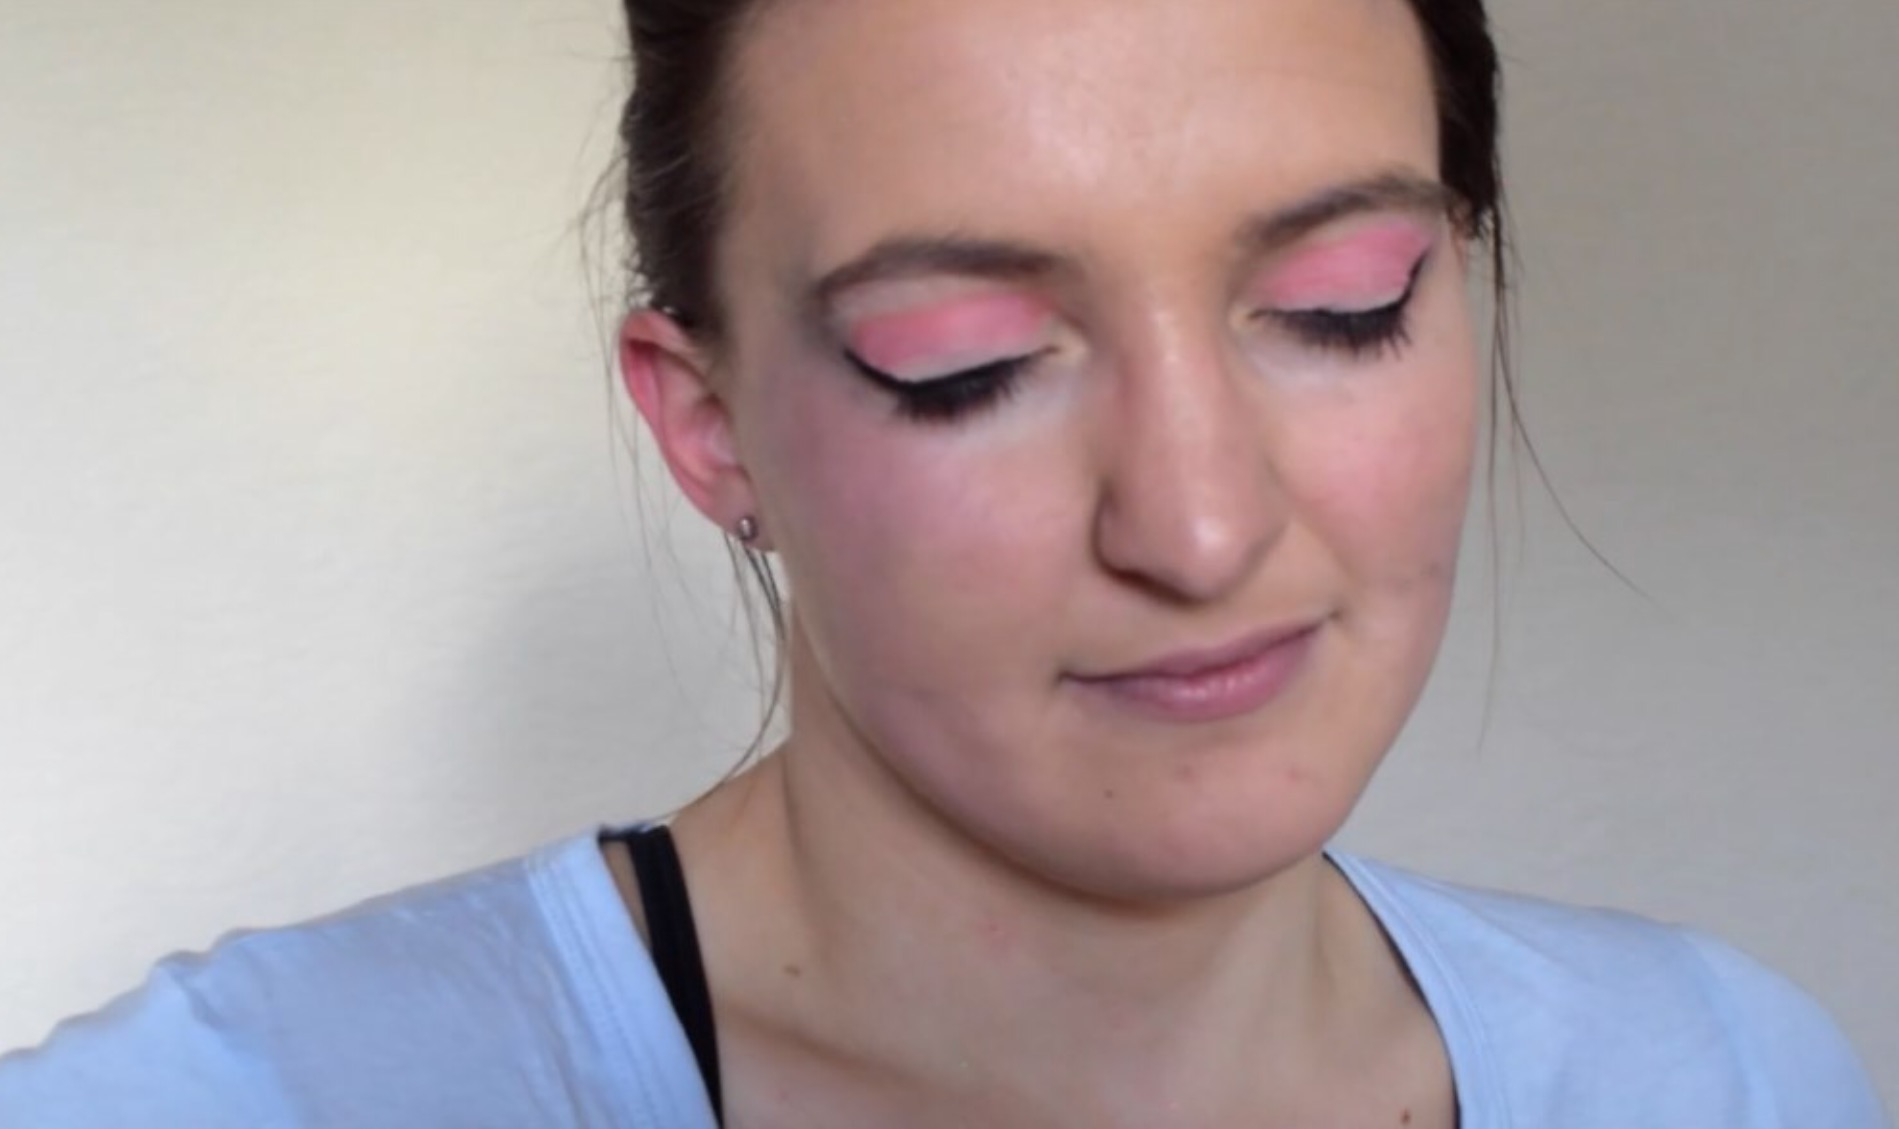 Katie : 'I don't think it's too bad considering I haven't done a cut crease before, but I definitely would not wear this every day.'